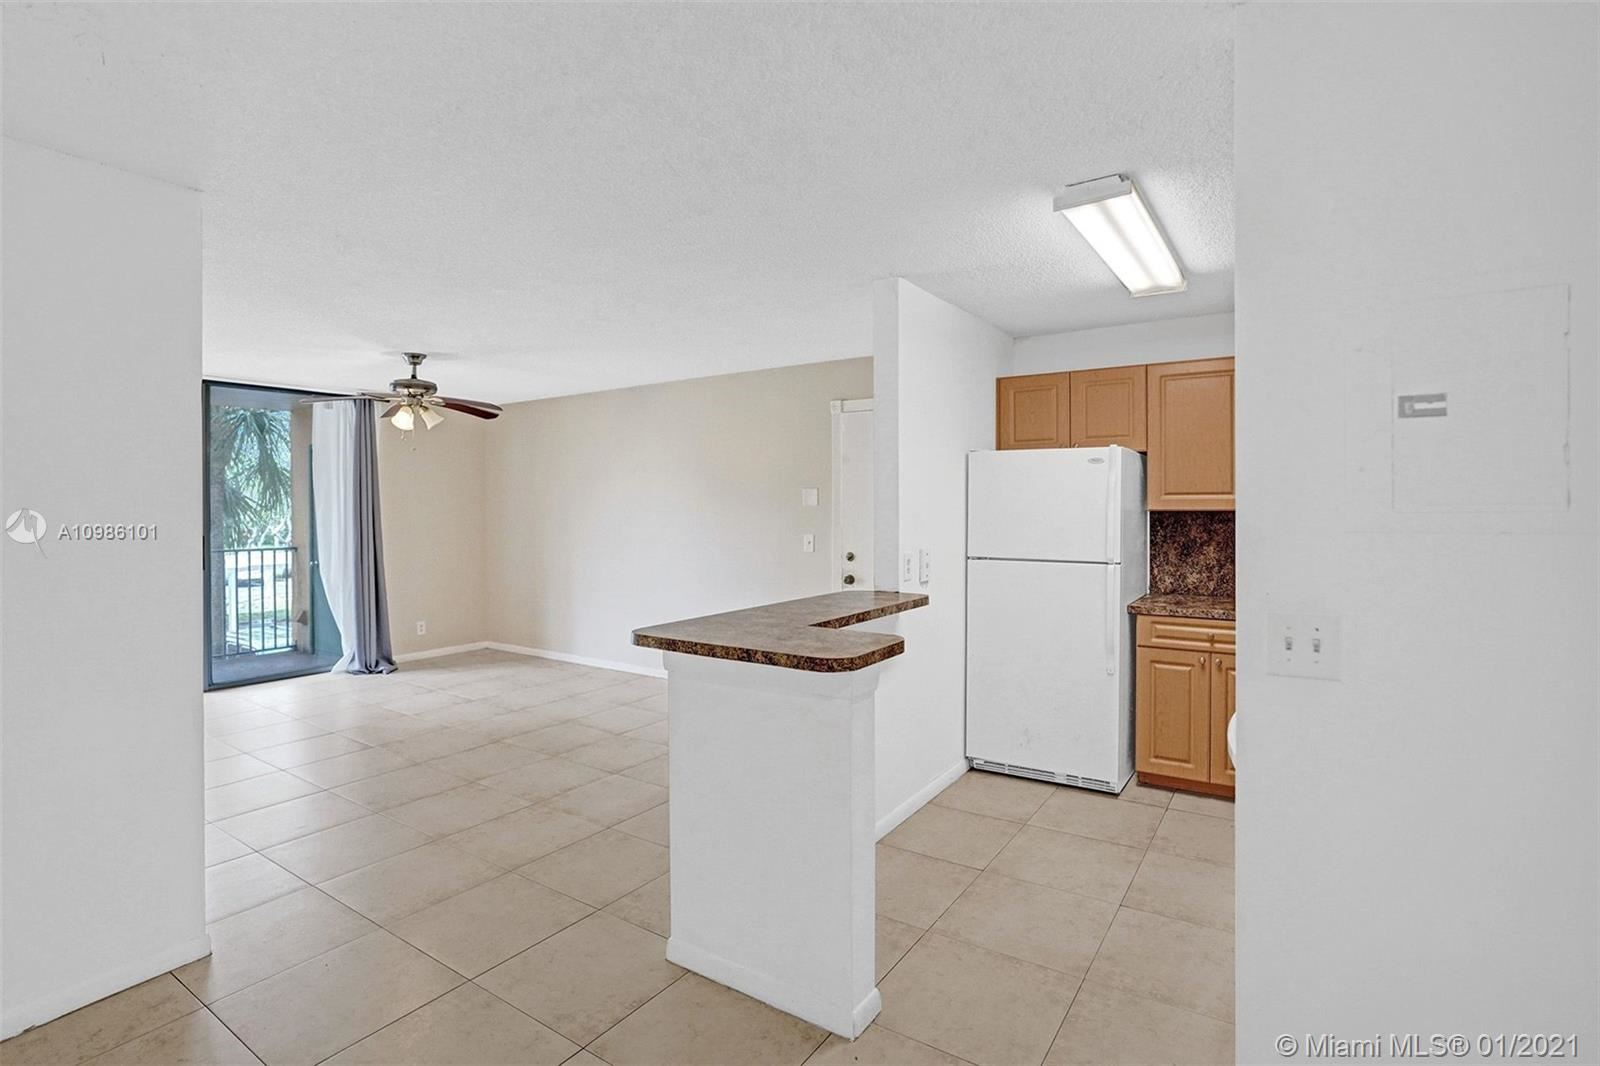 10749 Cleary Blvd #209, Plantation, FL 33324 - #: A10986101